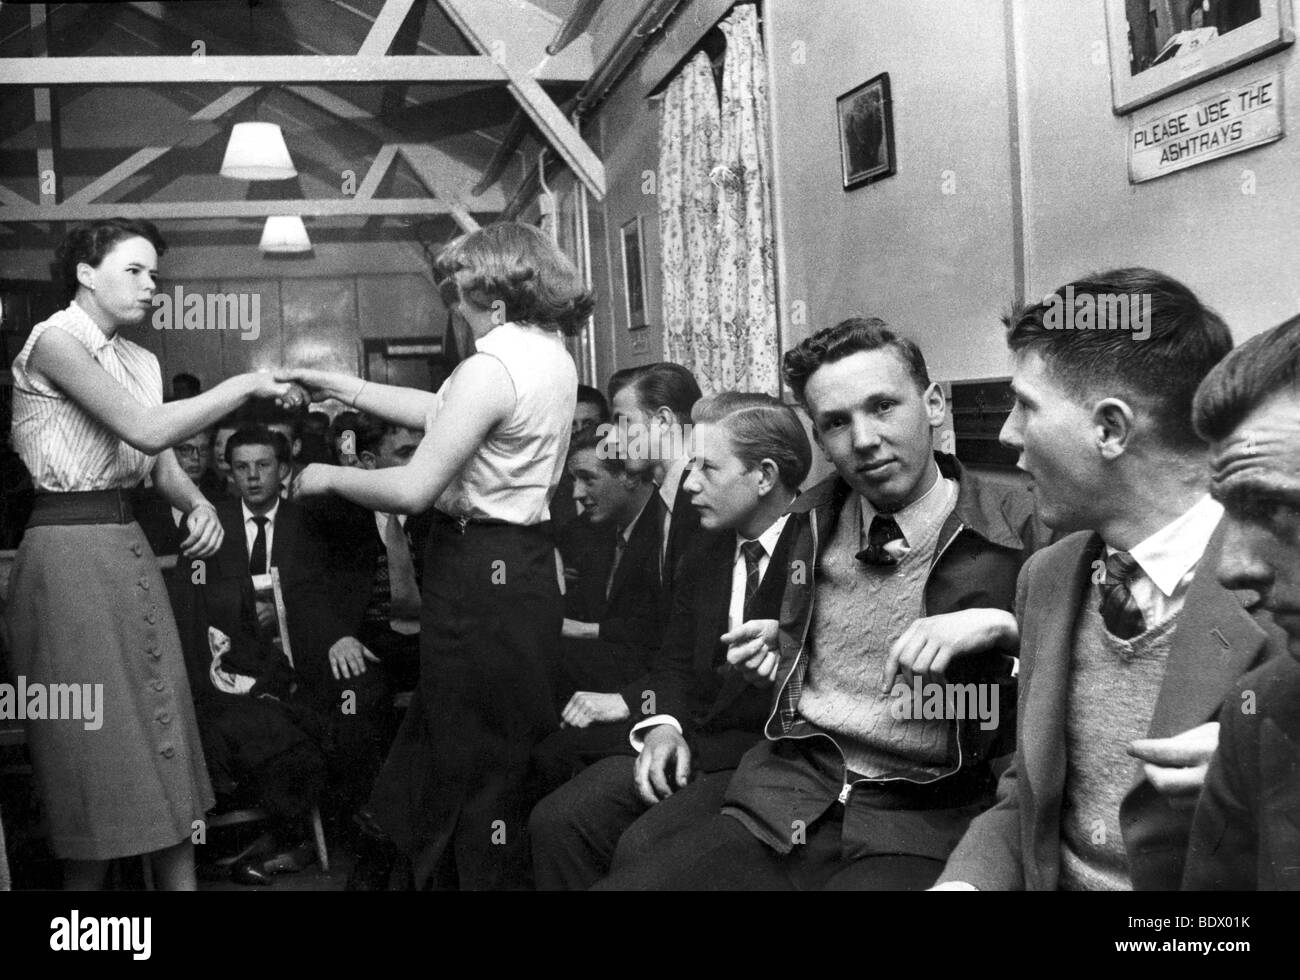 SOUTH LONDON teenage dance club nel 1957 Immagini Stock